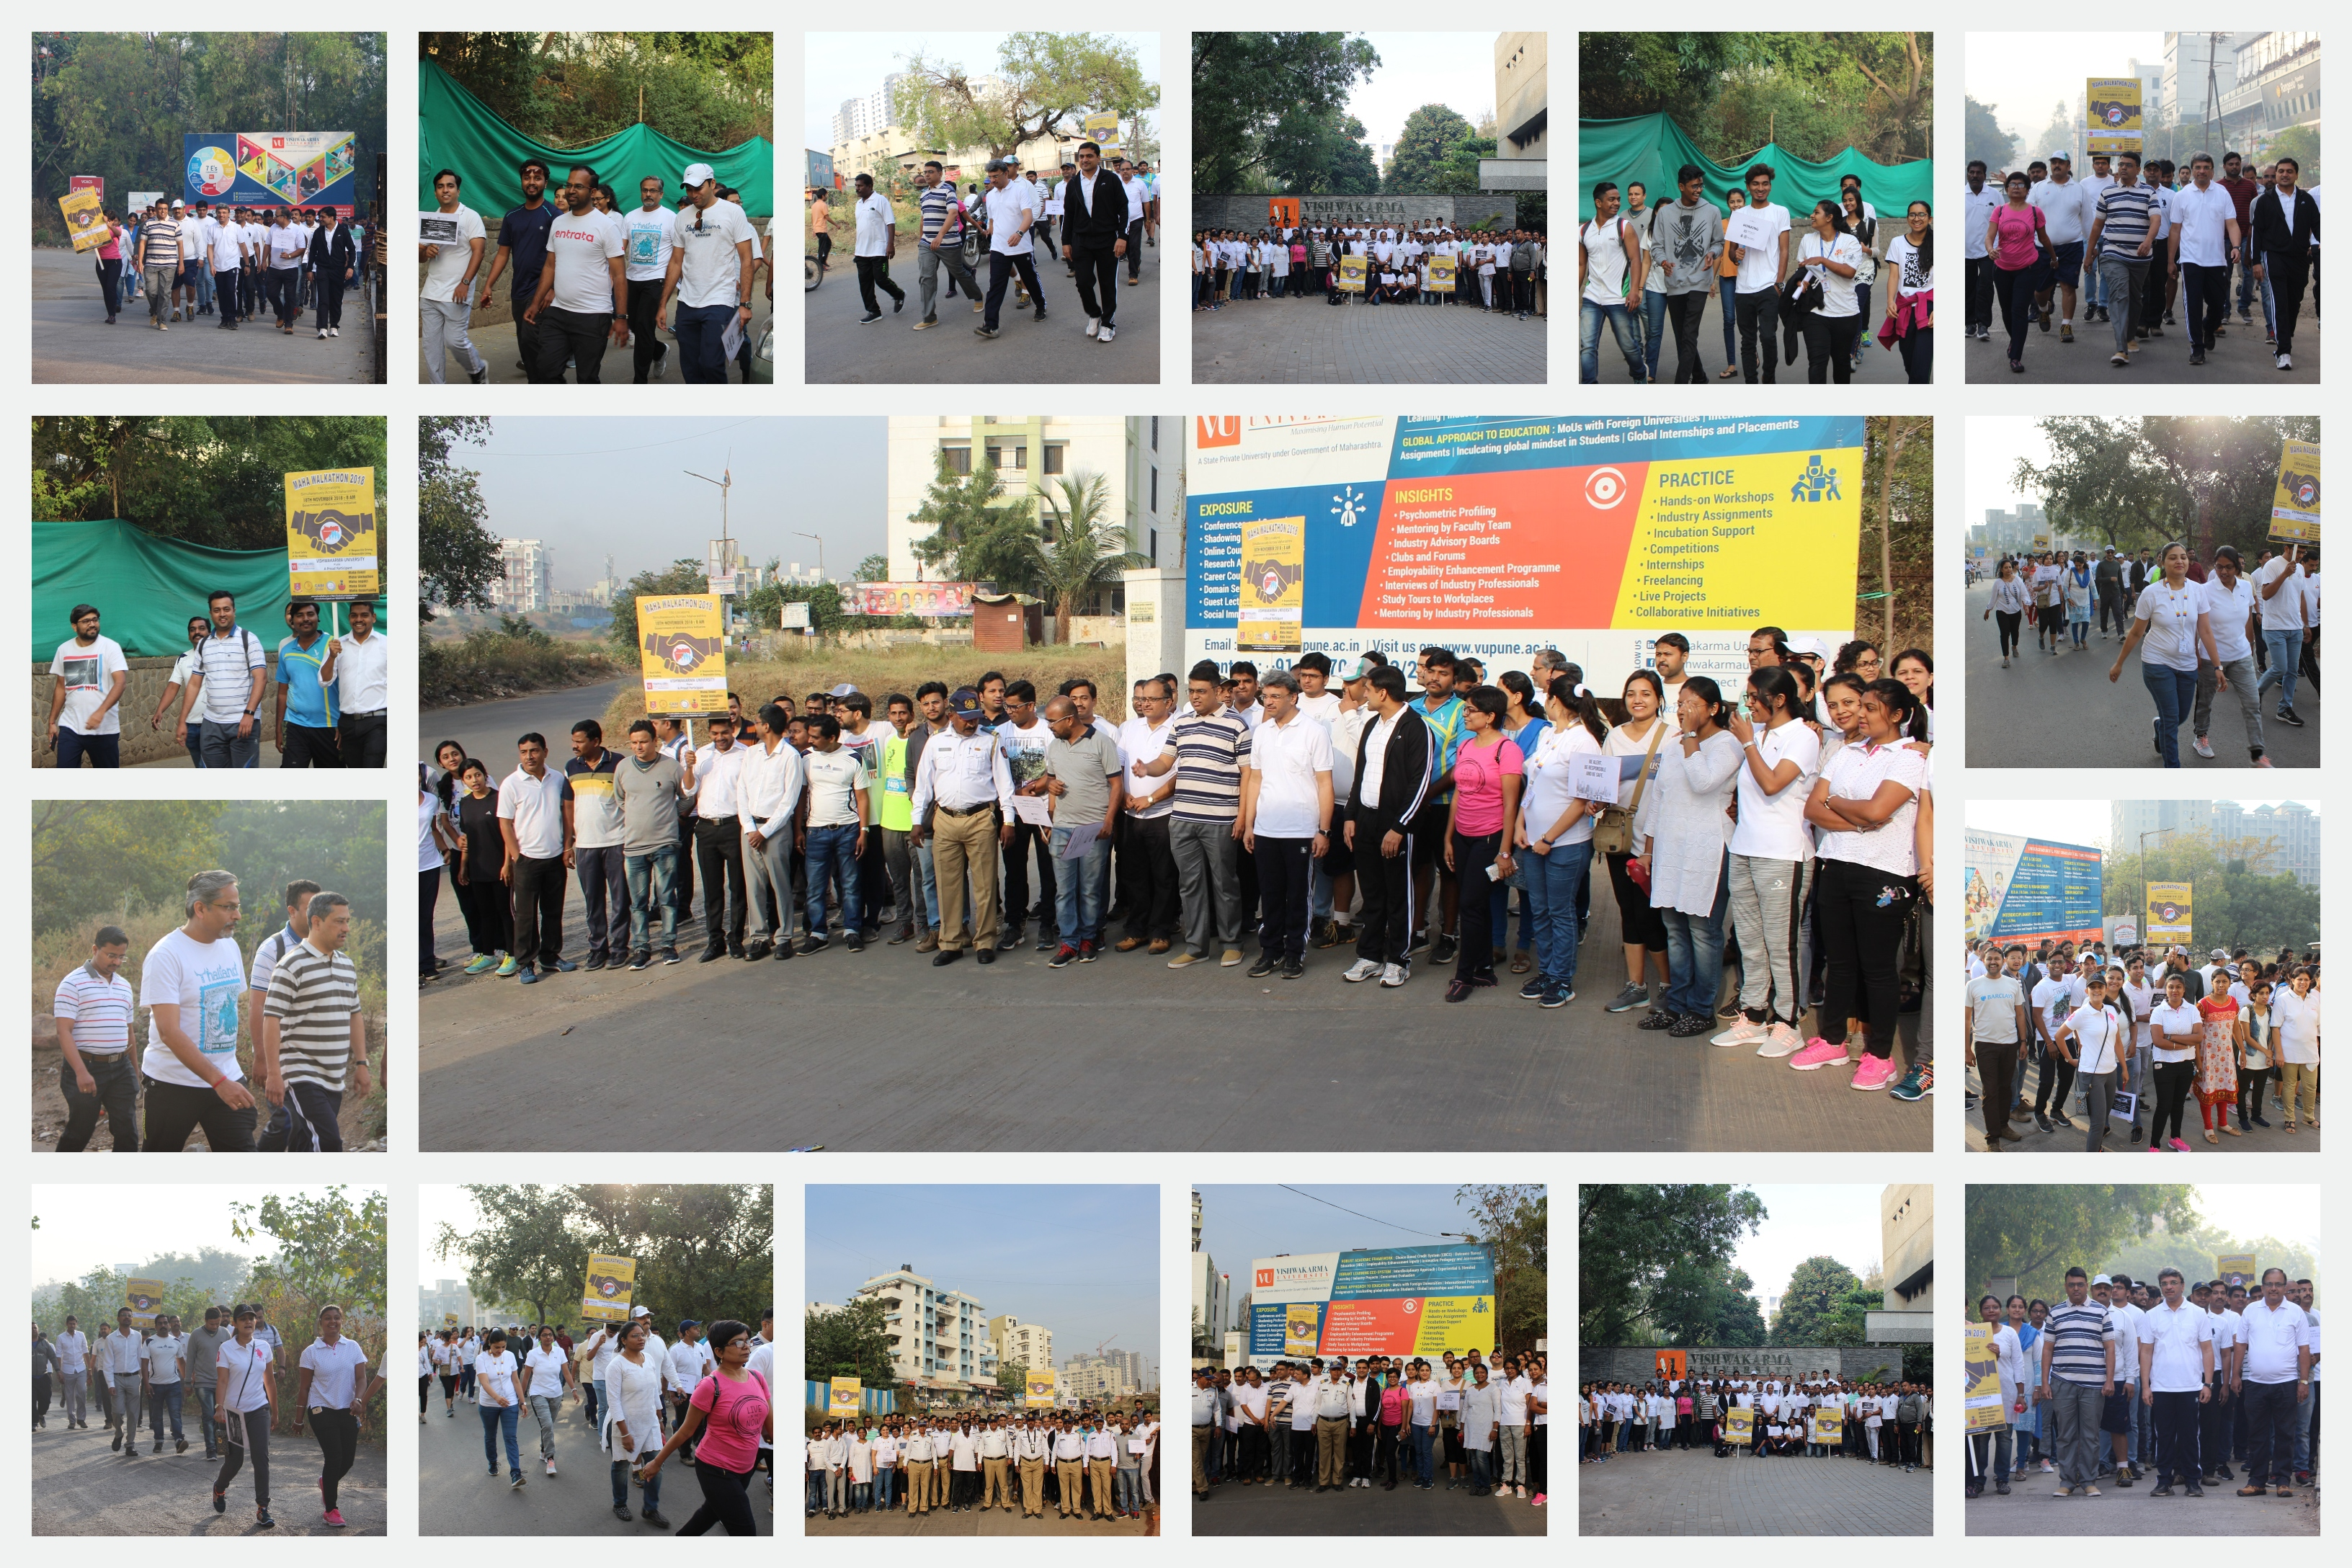 Maha Walkathon 2018